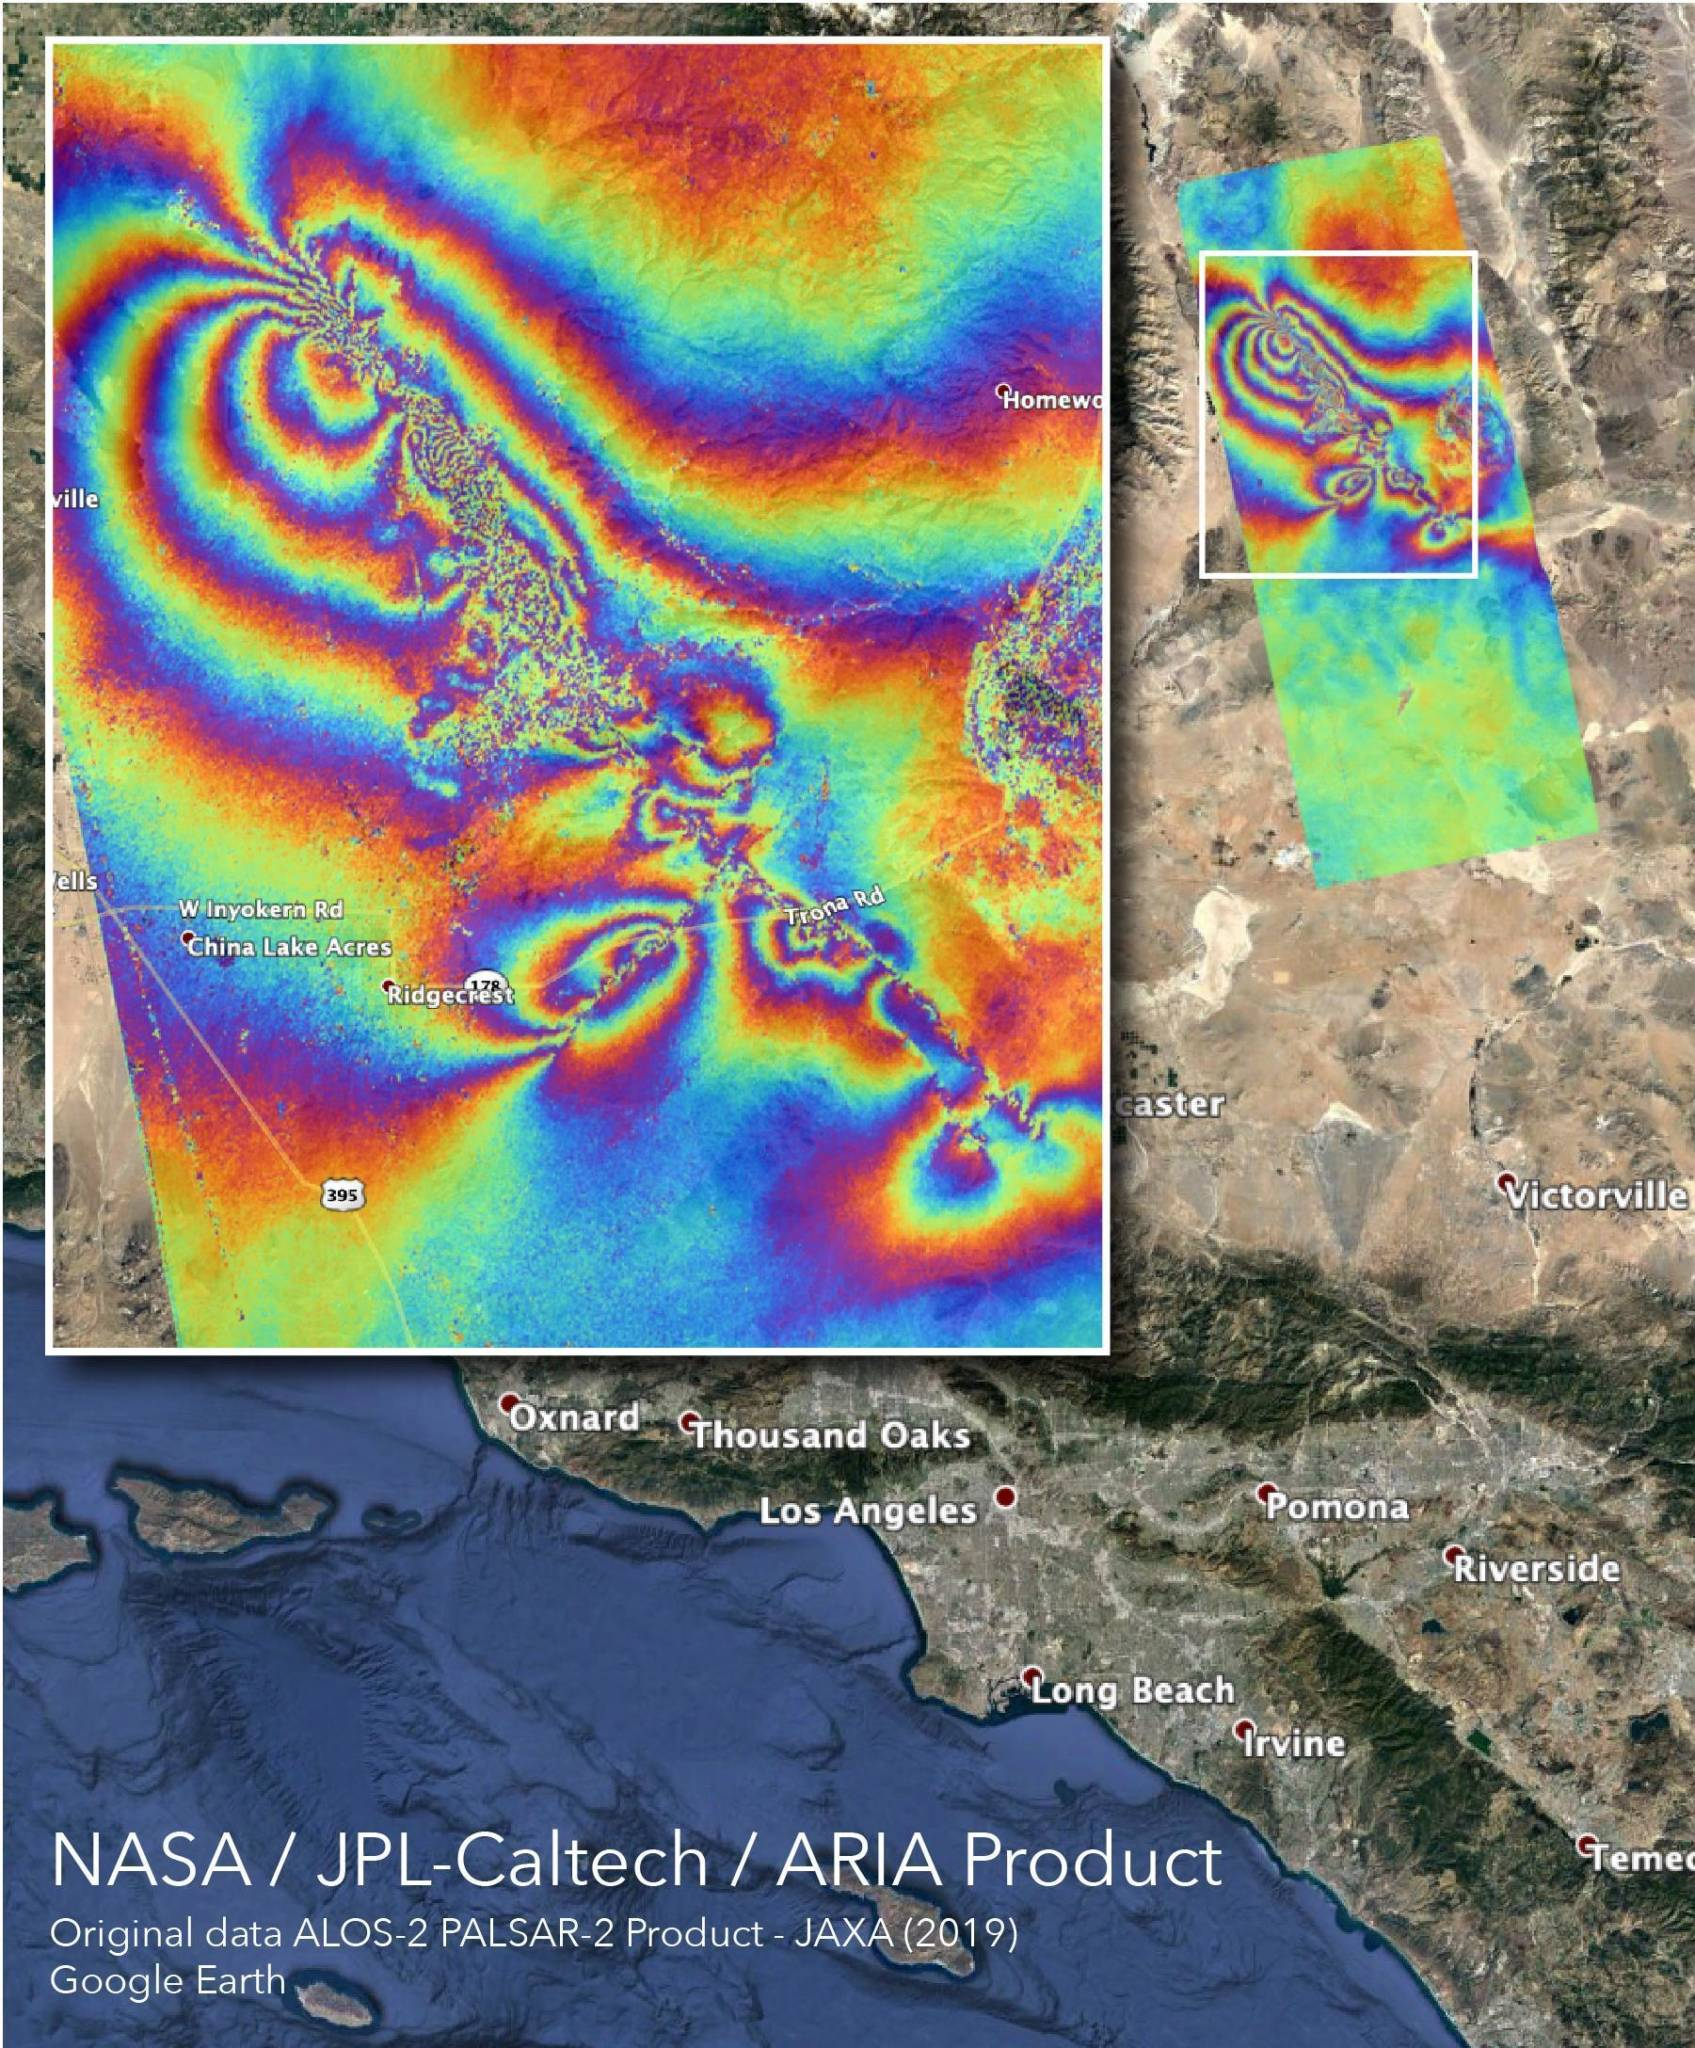 Rippling Rainbow Map Shows How California Earthquakes Moved the Earth